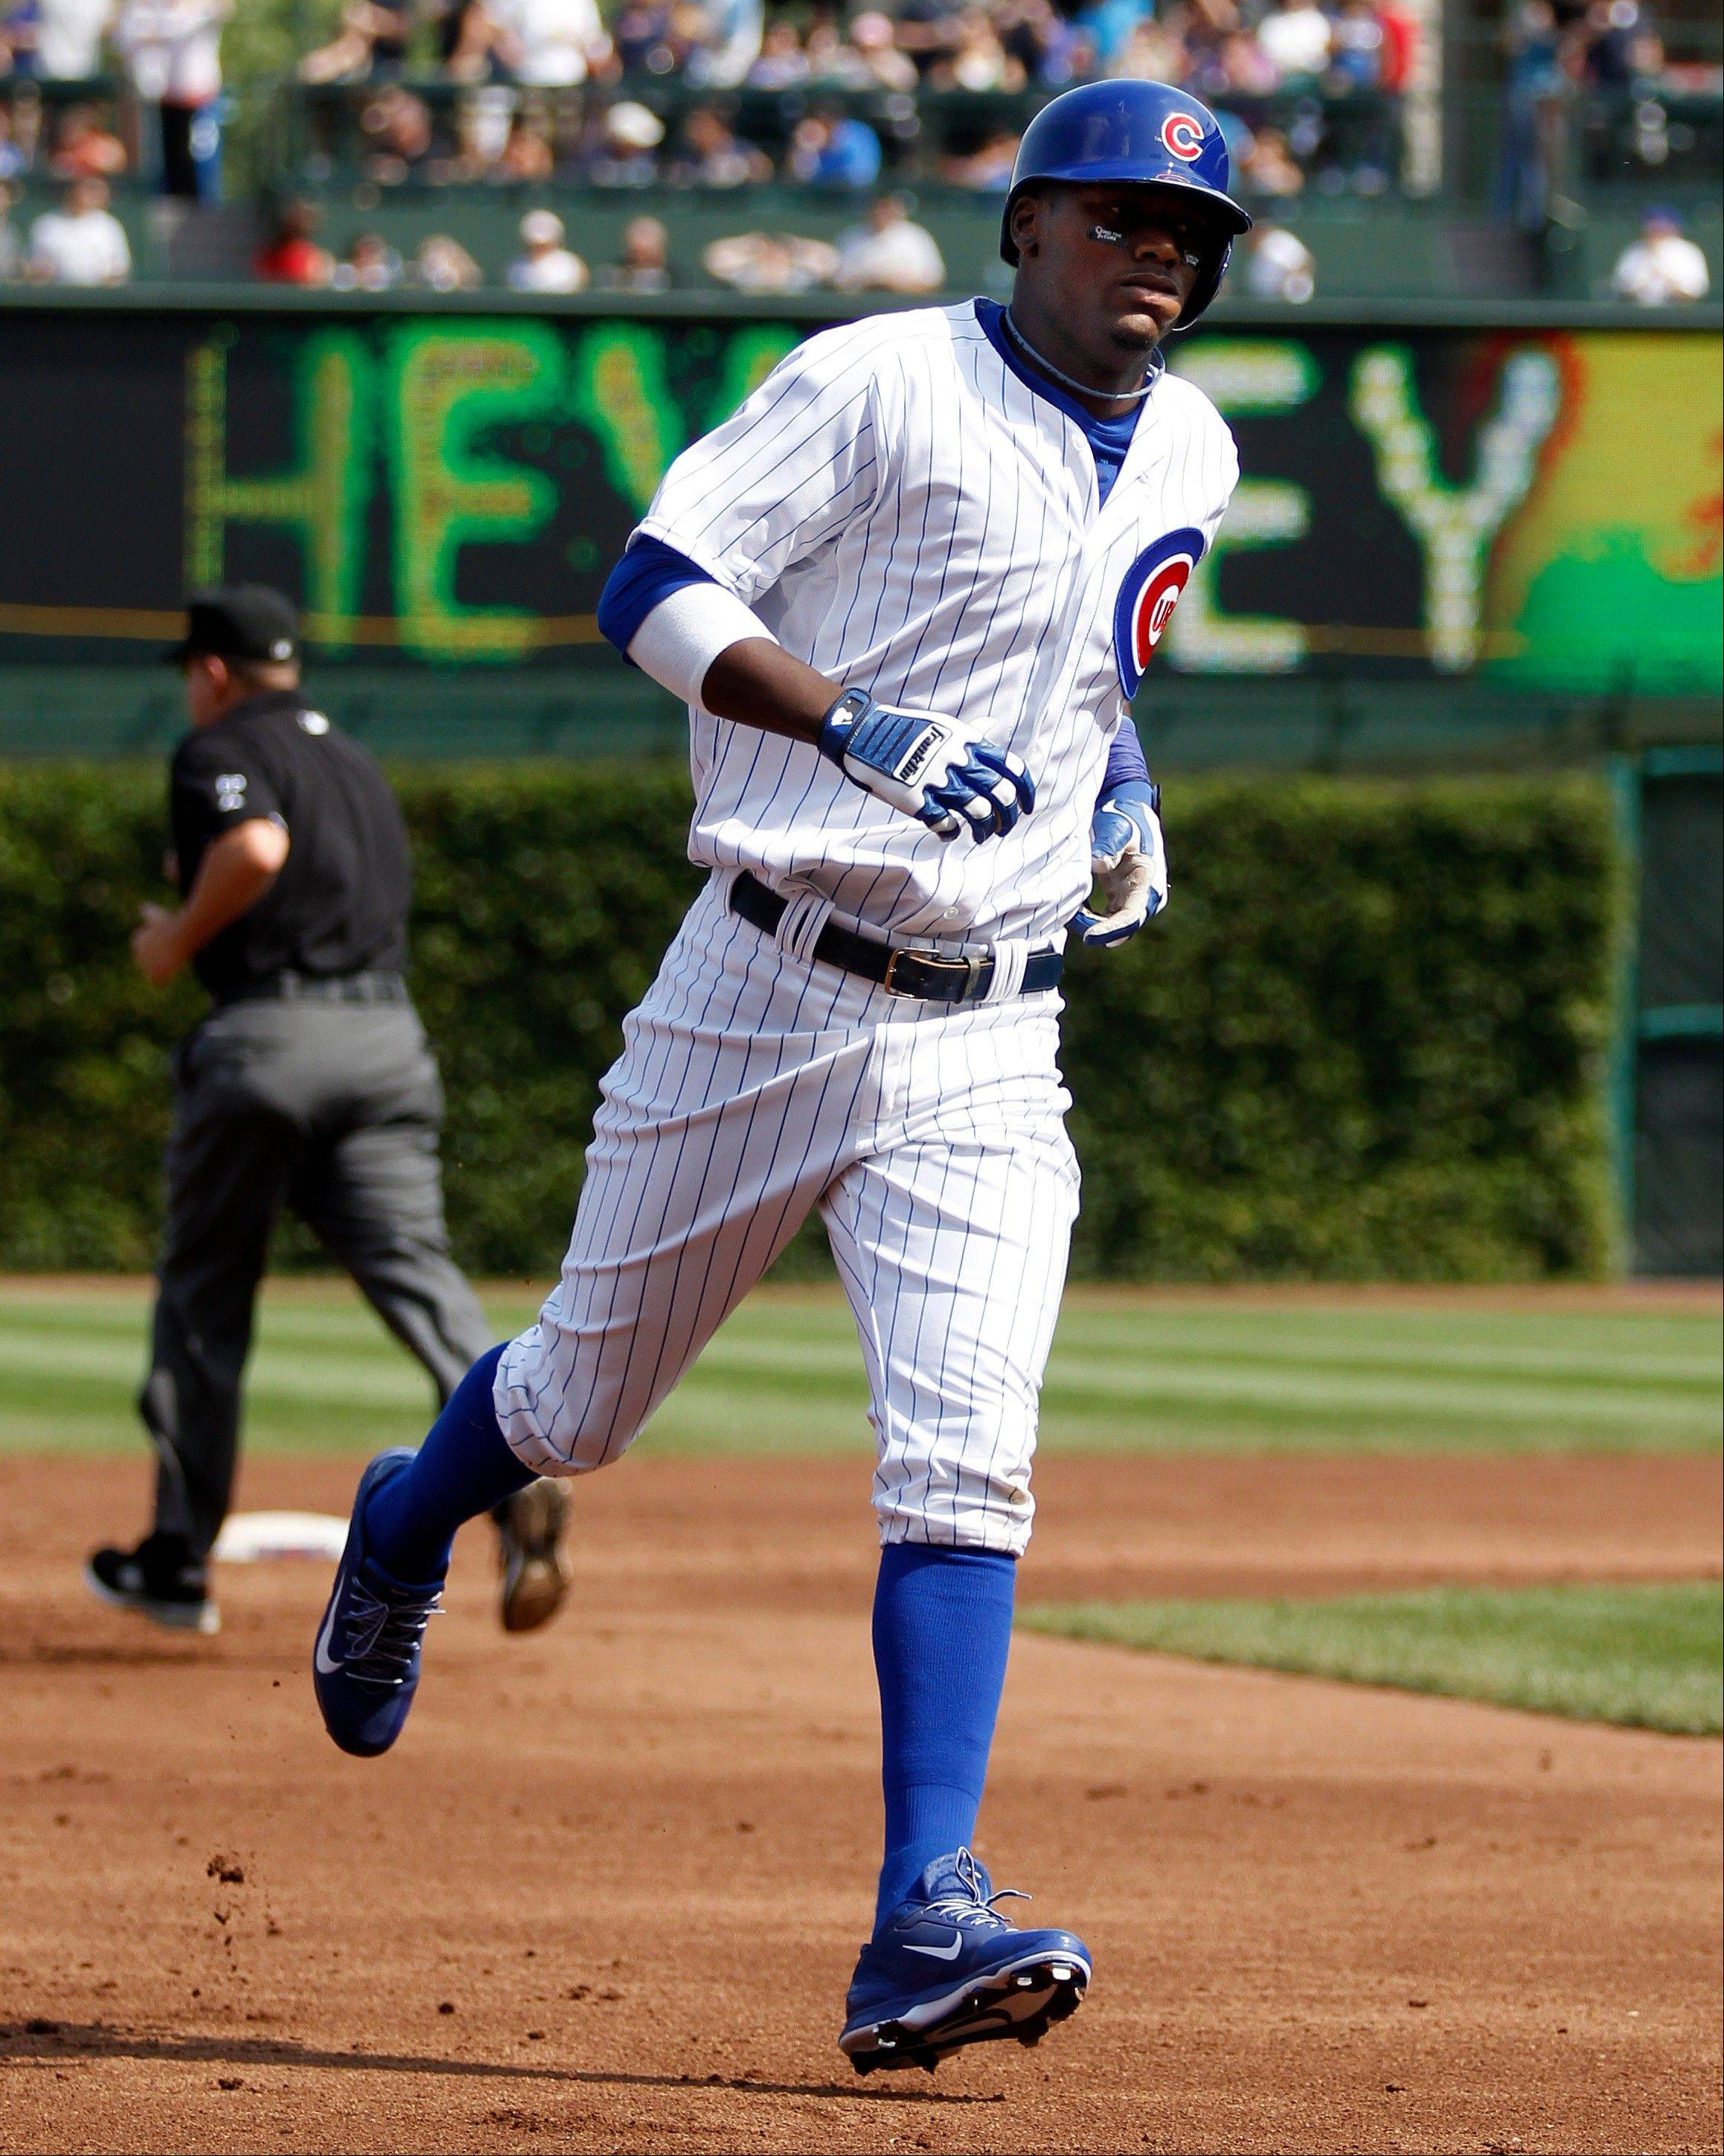 The Cubs' Junior Lake rounds the bases after hitting a grand slam in the first inning Friday against the Brewers at Wrigley Field.